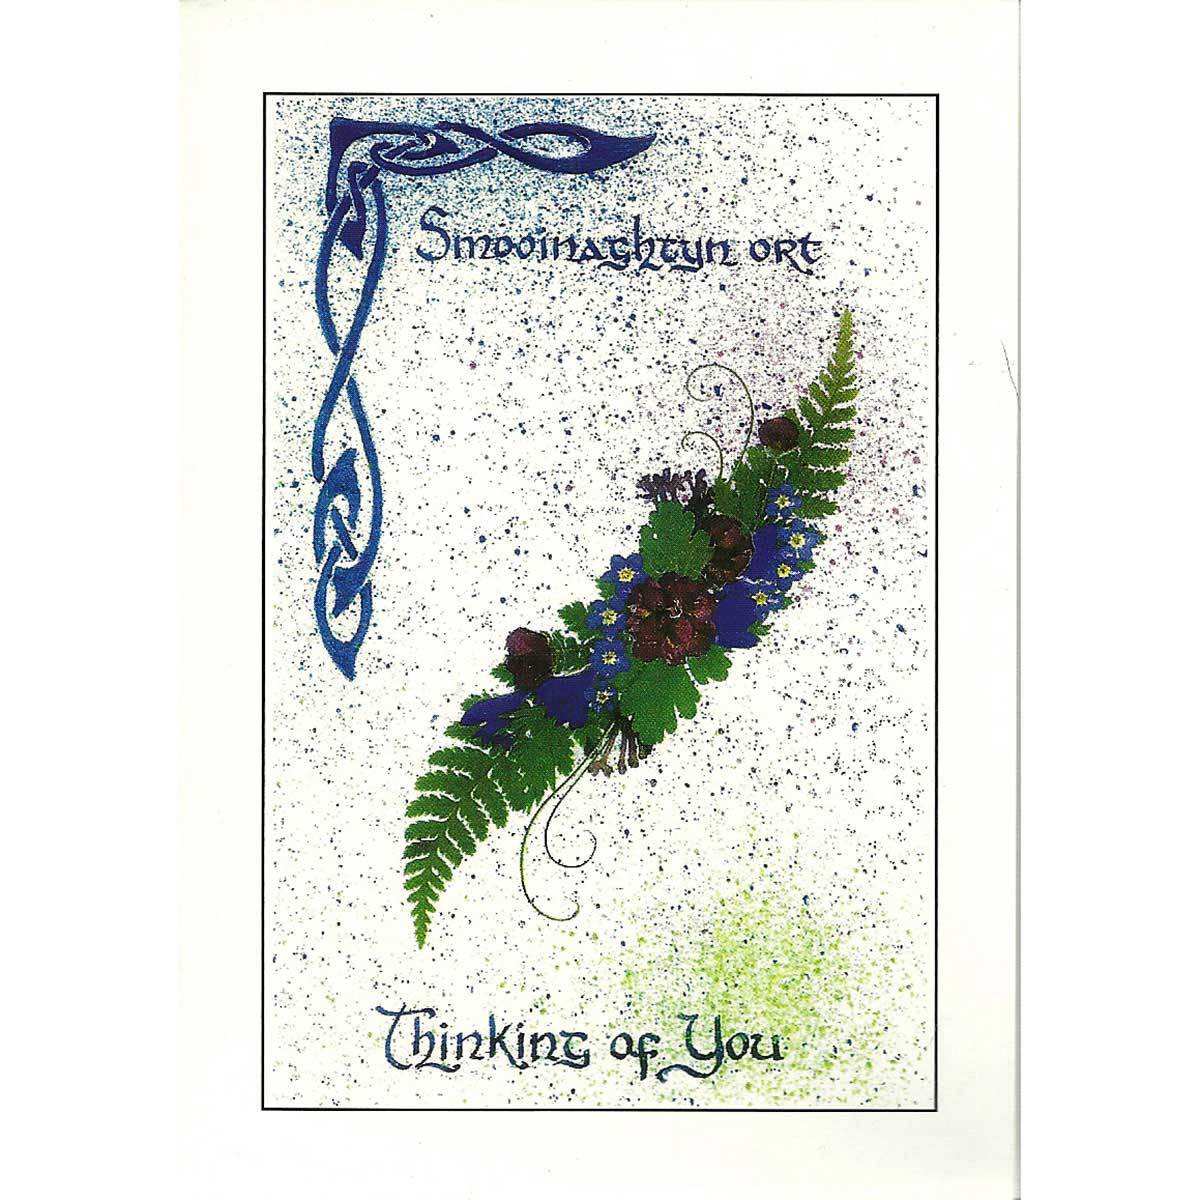 Thinking of you greetings card dorcas costain blann greetings card thinking of you in both manx and english by dorcas costain m4hsunfo